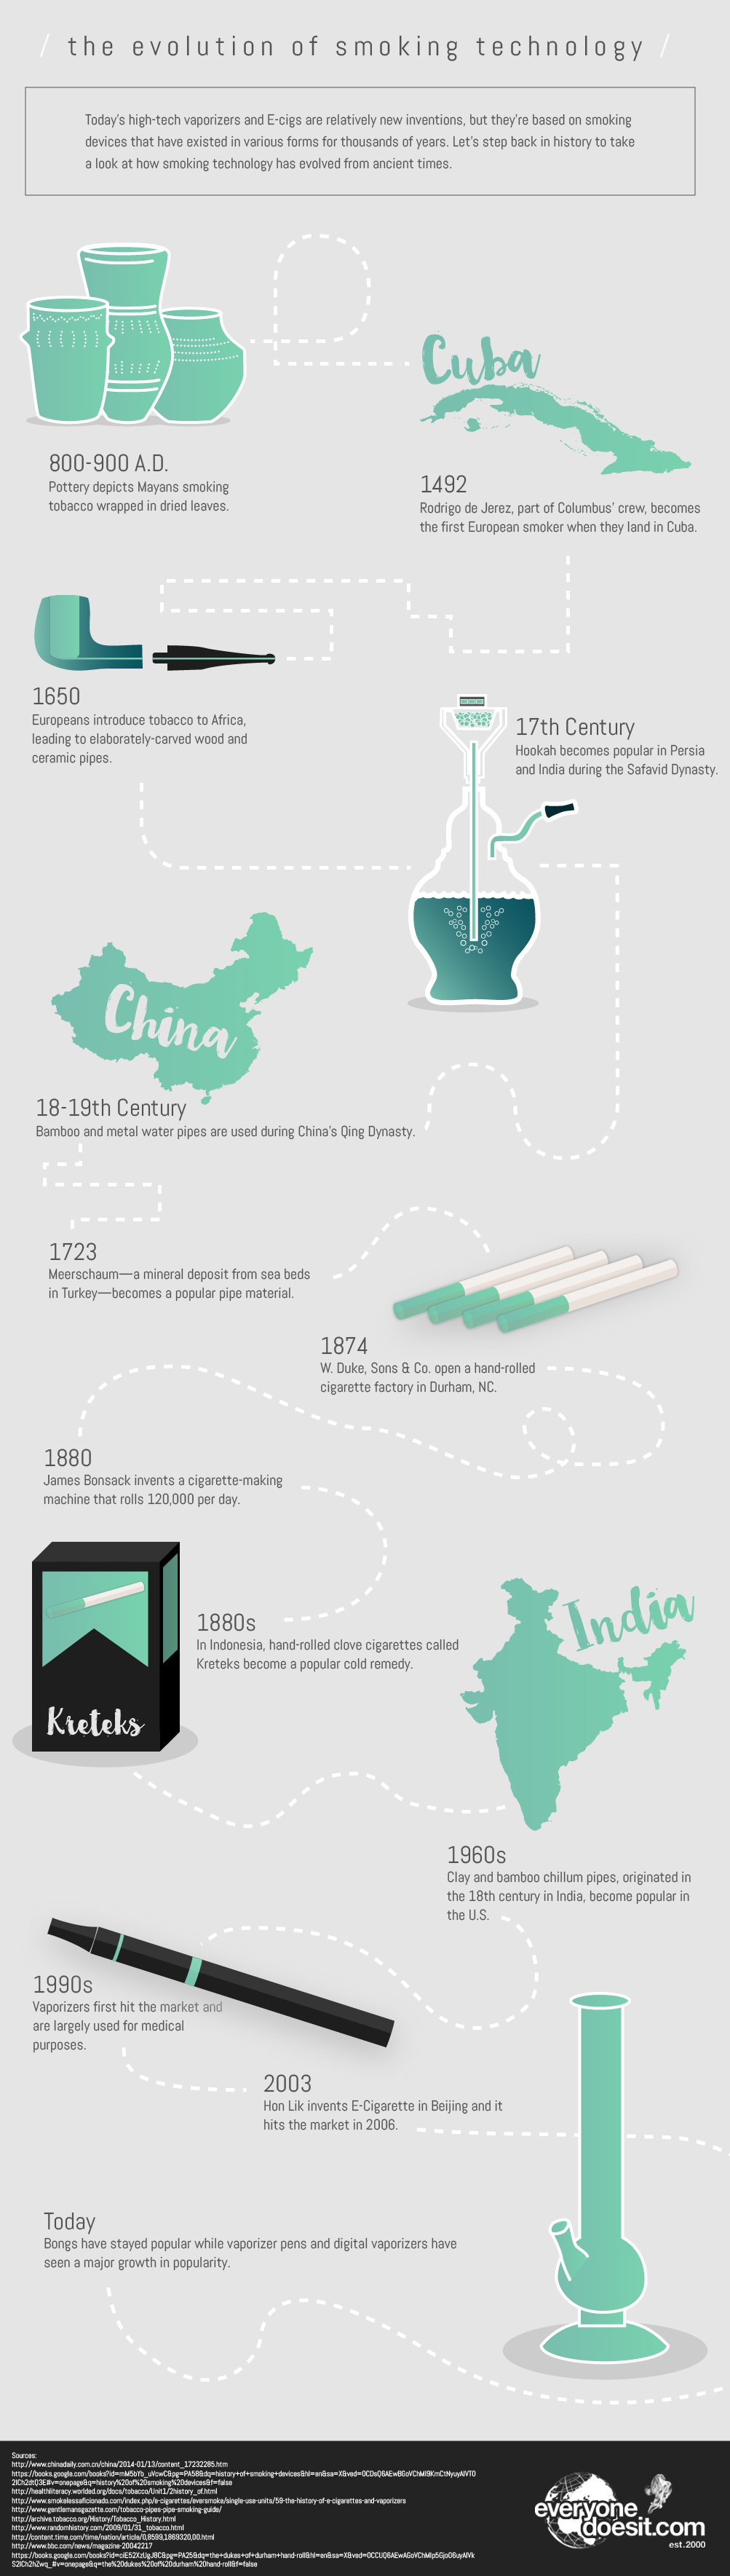 History of Smoking Devices